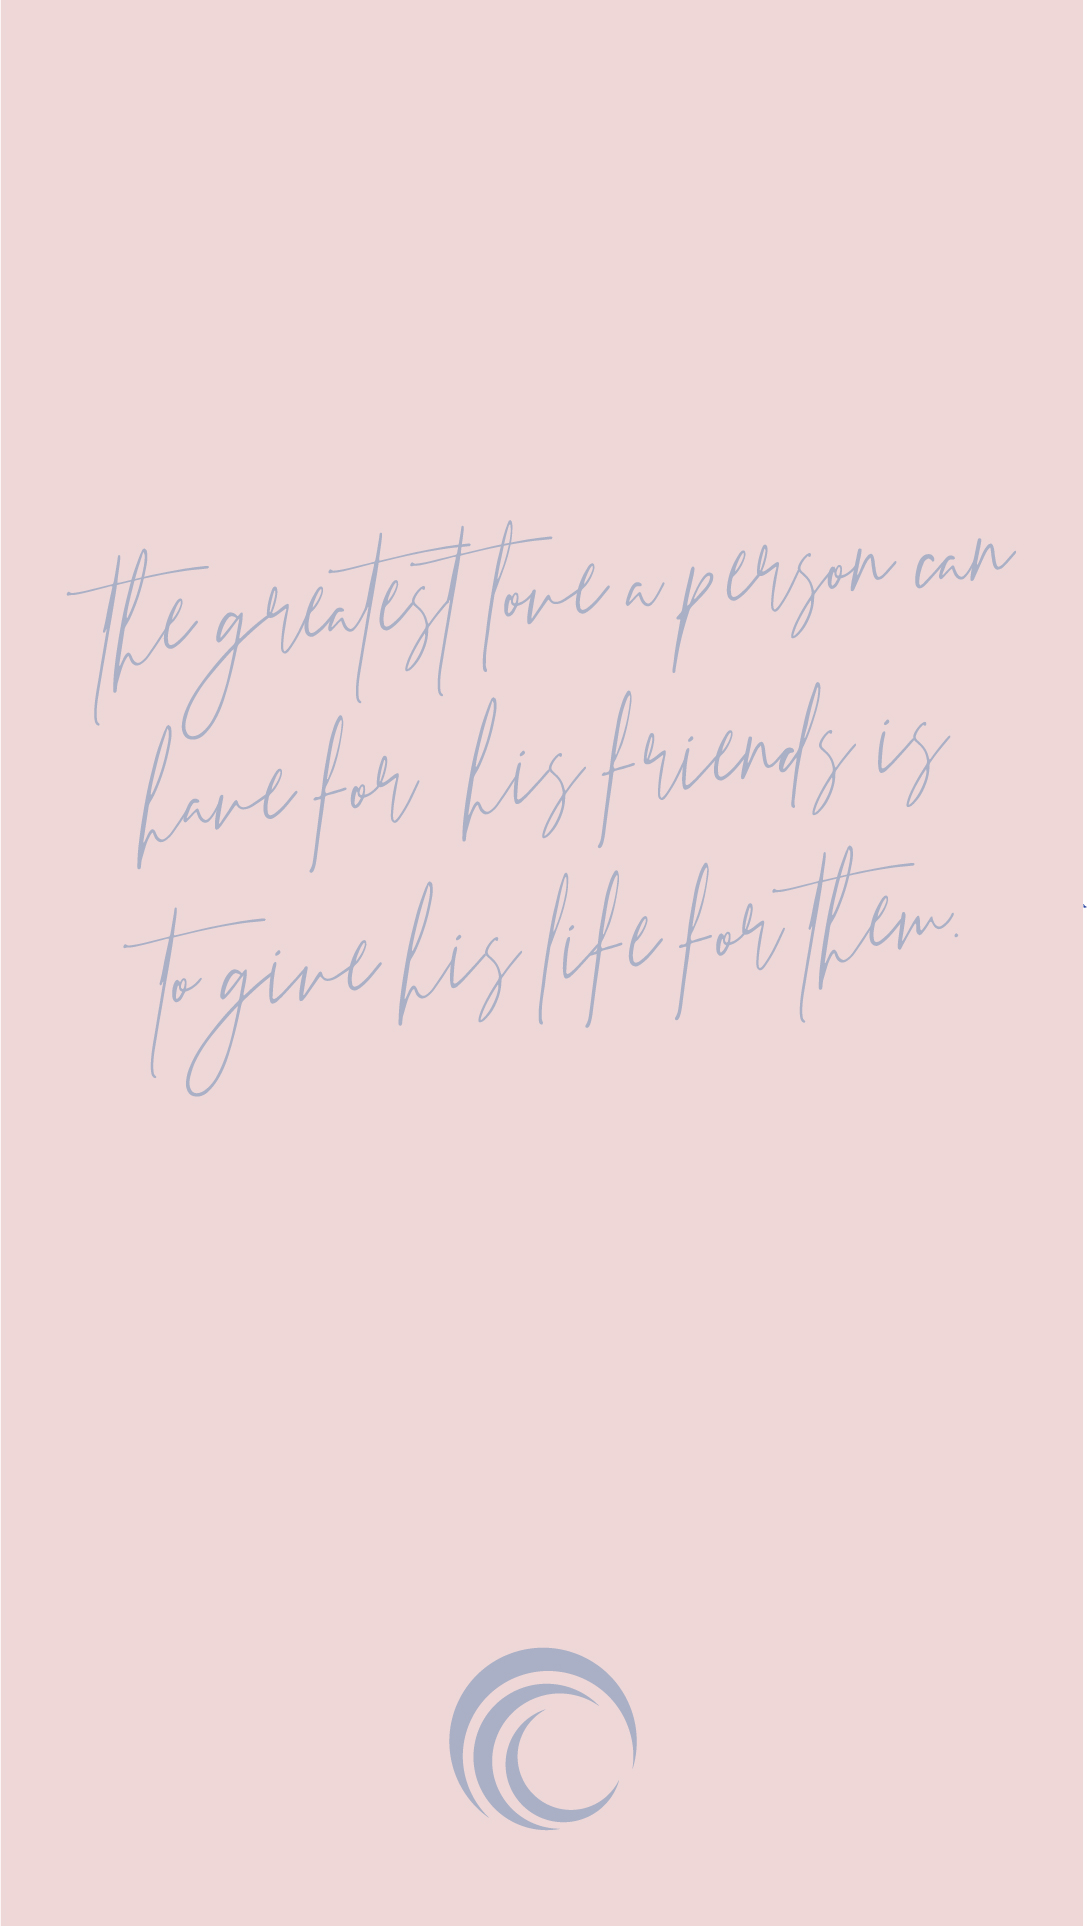 PINK SCRIPTURE WALLPAPER